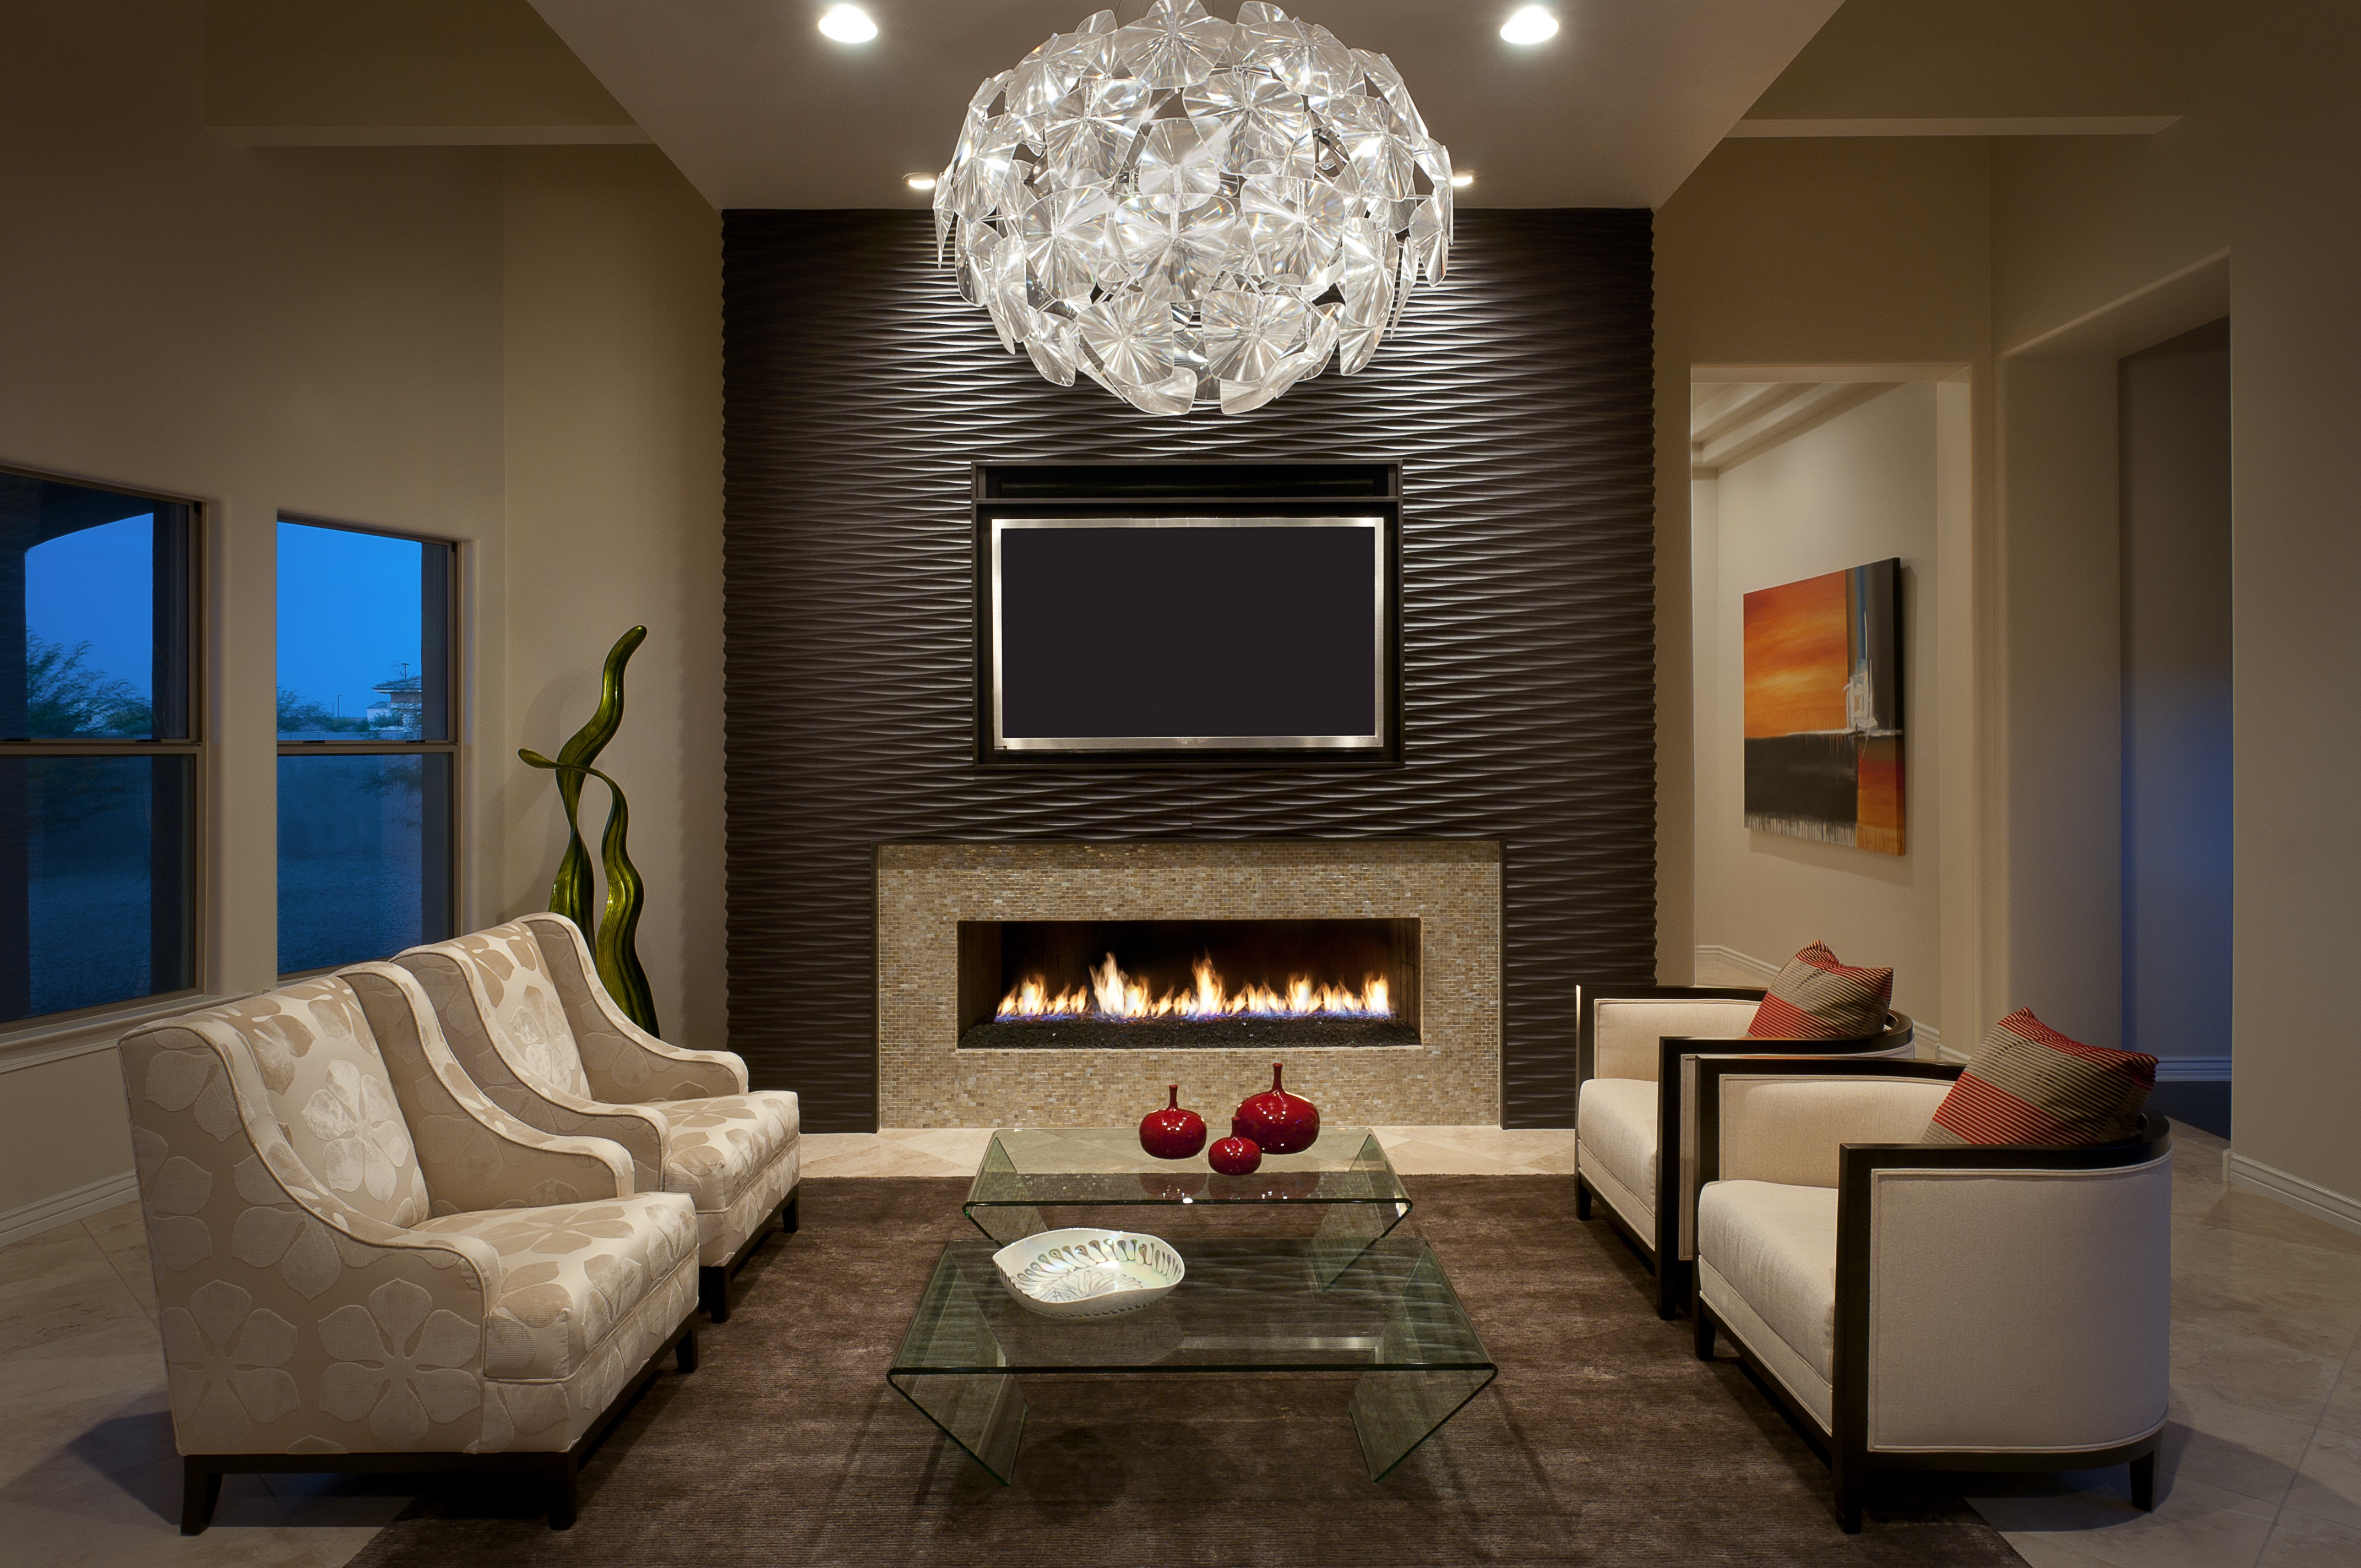 Formal Living Room With Modern Chandelier And Wood Clad Fireplace Surround (Image 8 of 18)